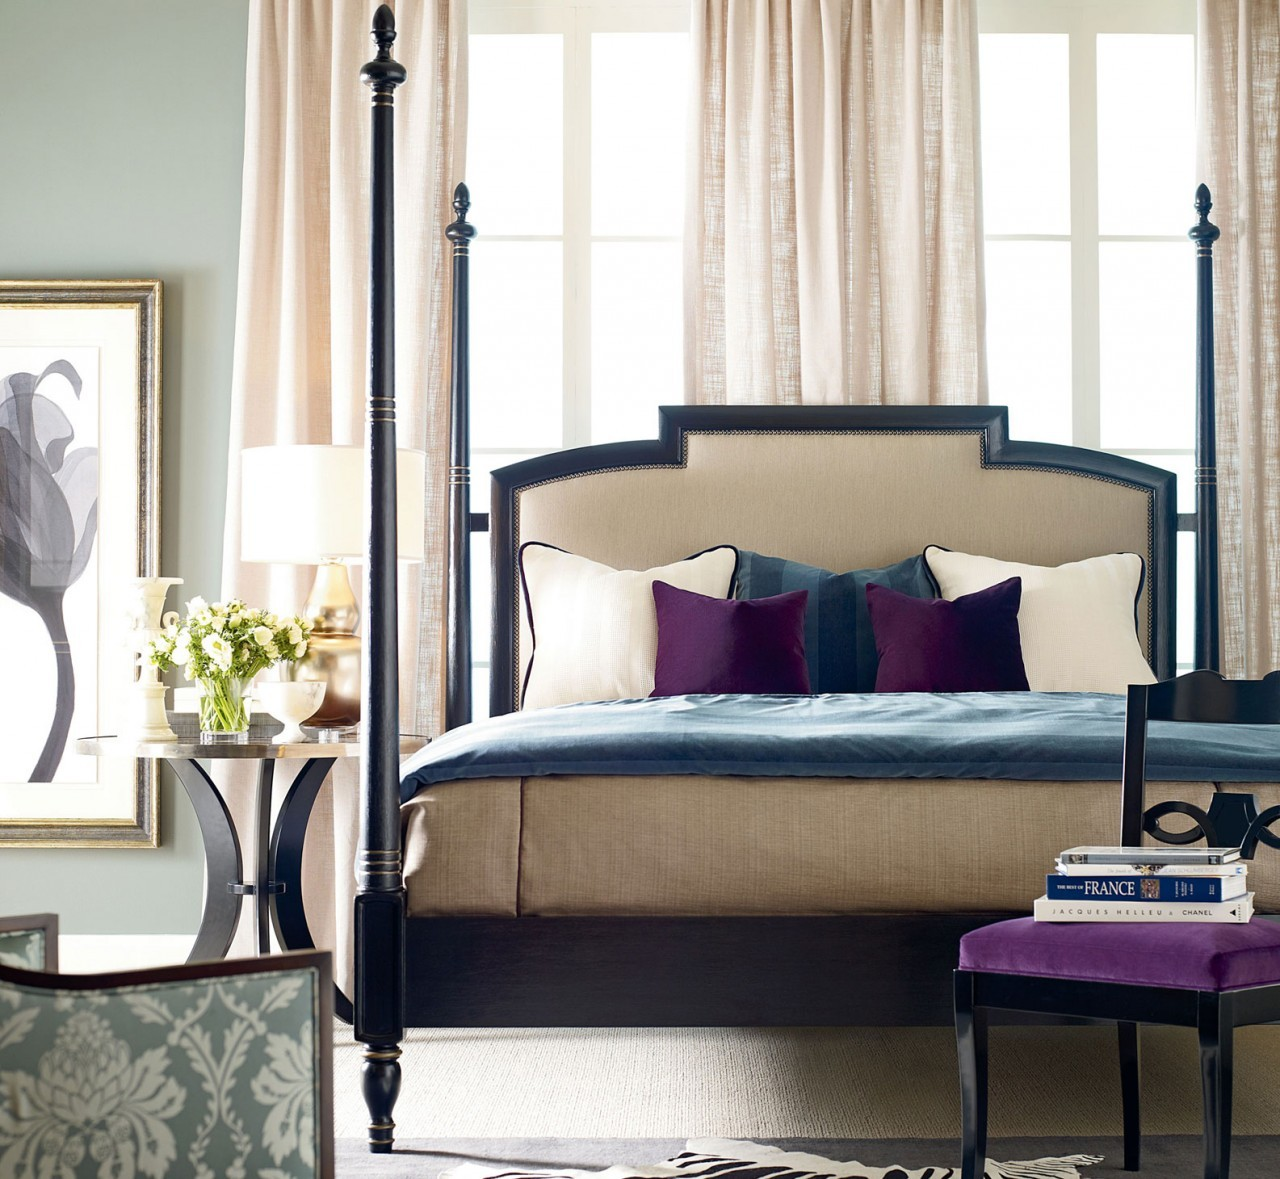 Elegant Upholstered Headboards Matched With Cream Bedding Before The Wall Window With Window And Curtain For Bedroom Decor Ideas